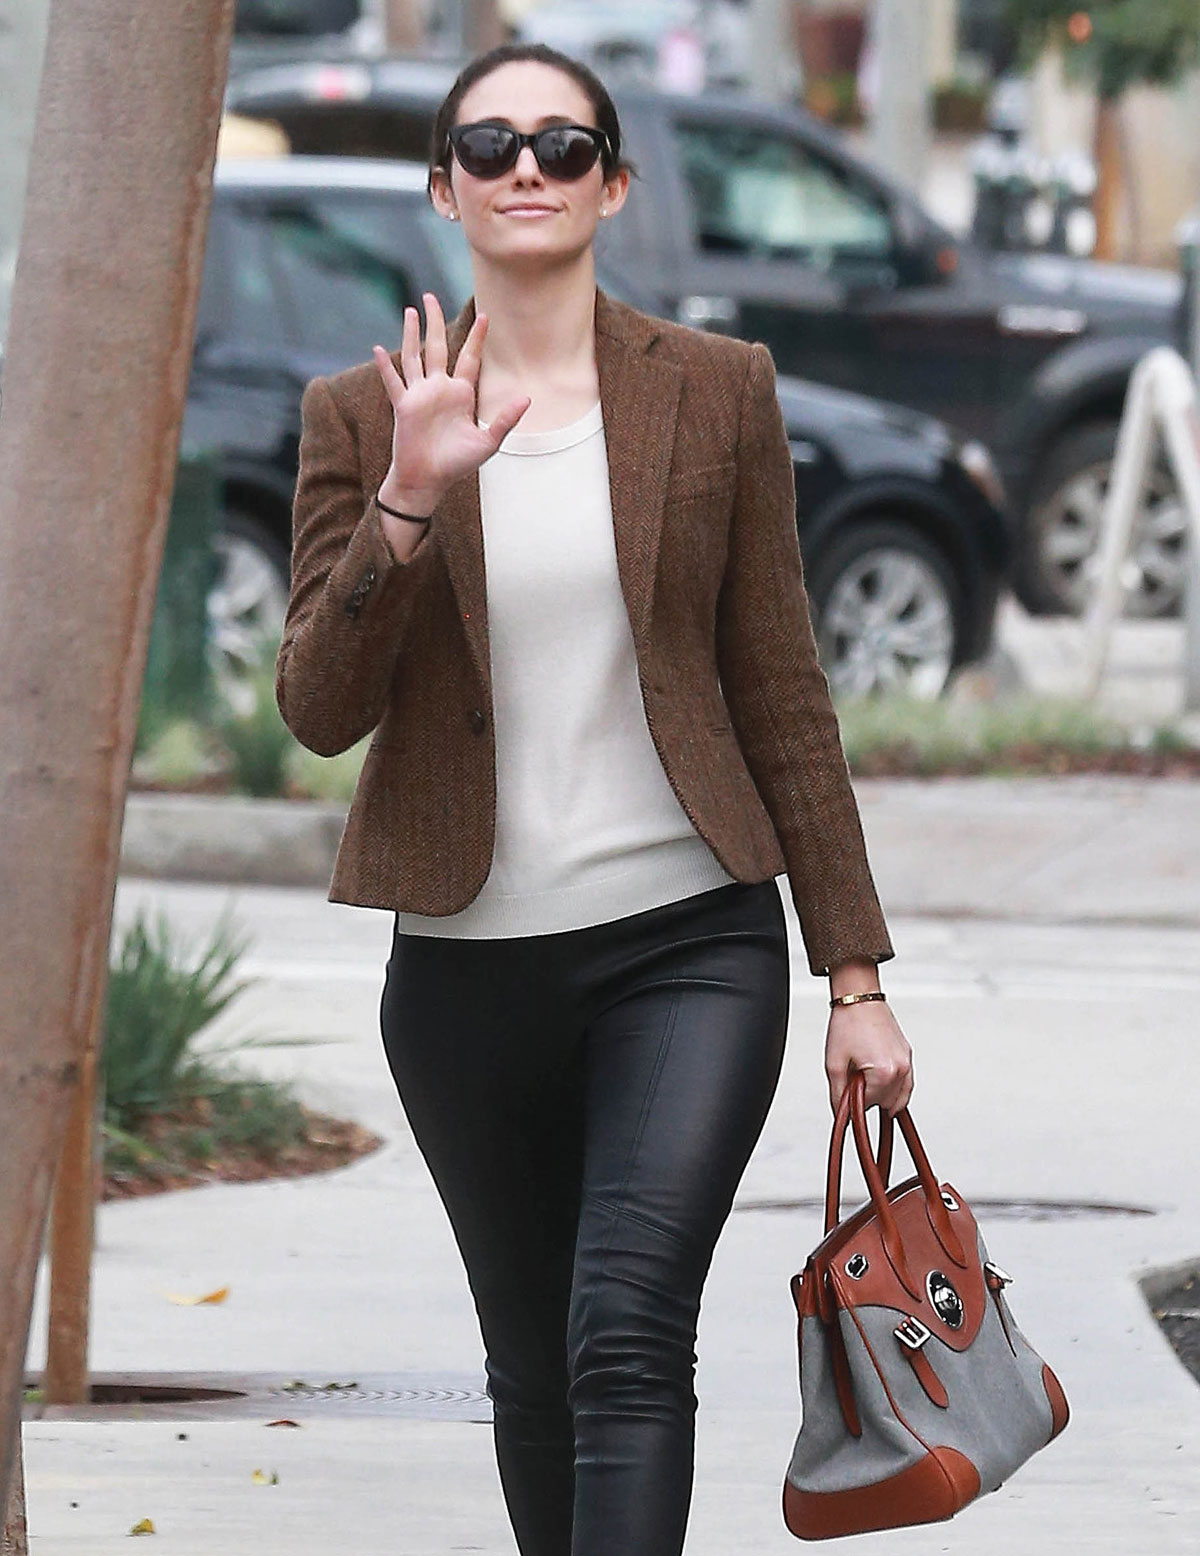 Emmy Rossum out & about in LA